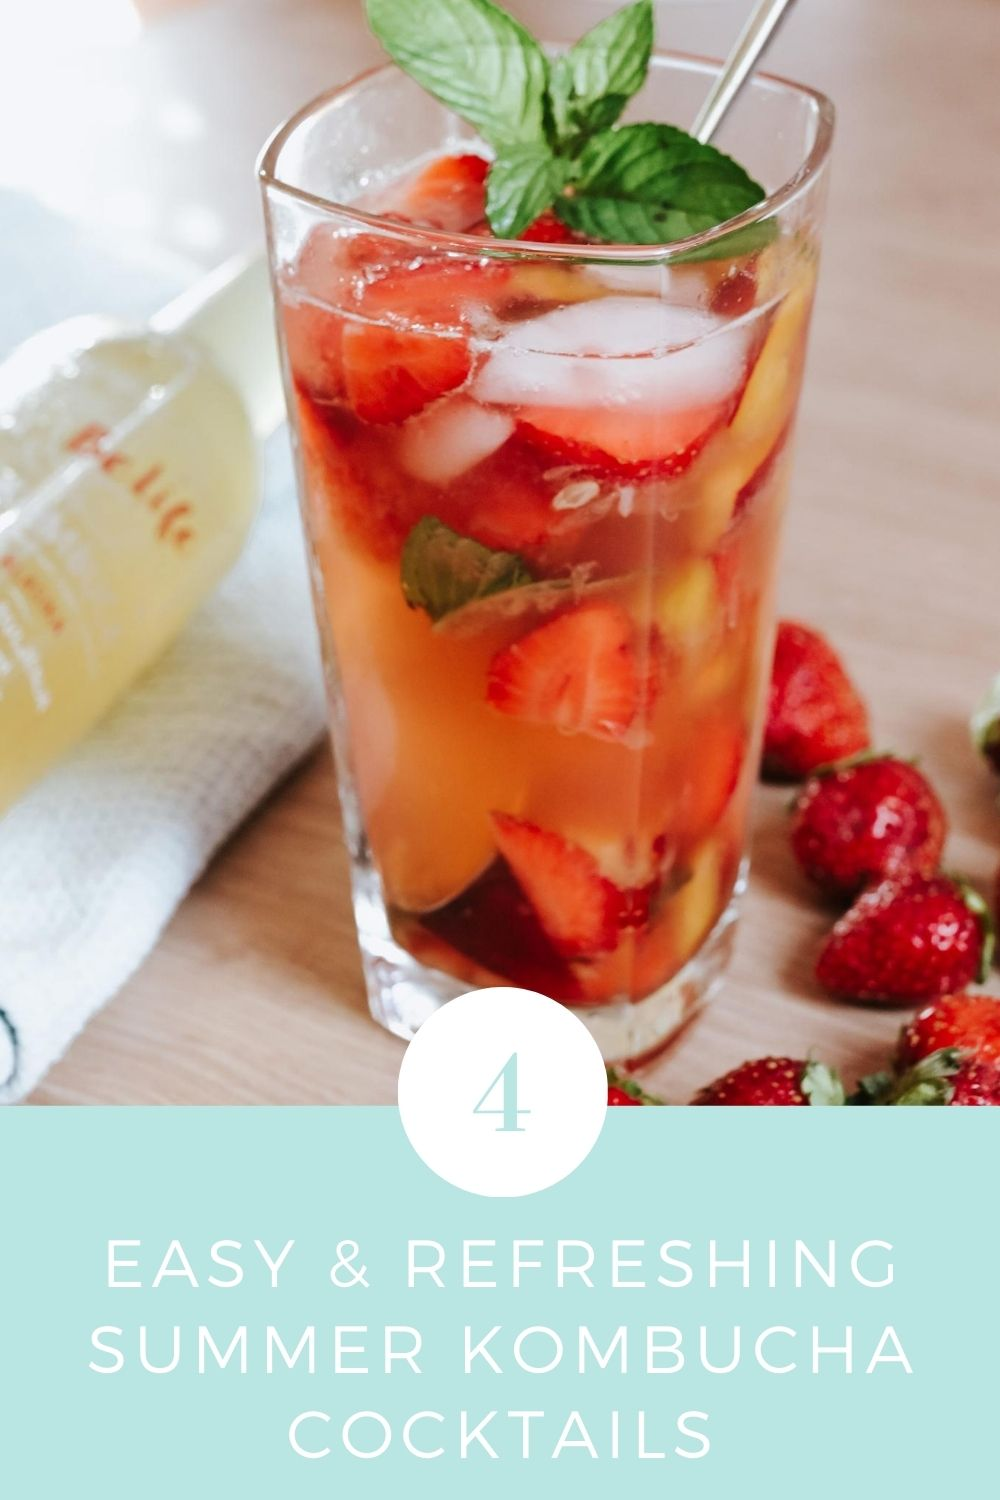 Easy and Refreshing Summer Kombucha Cocktails